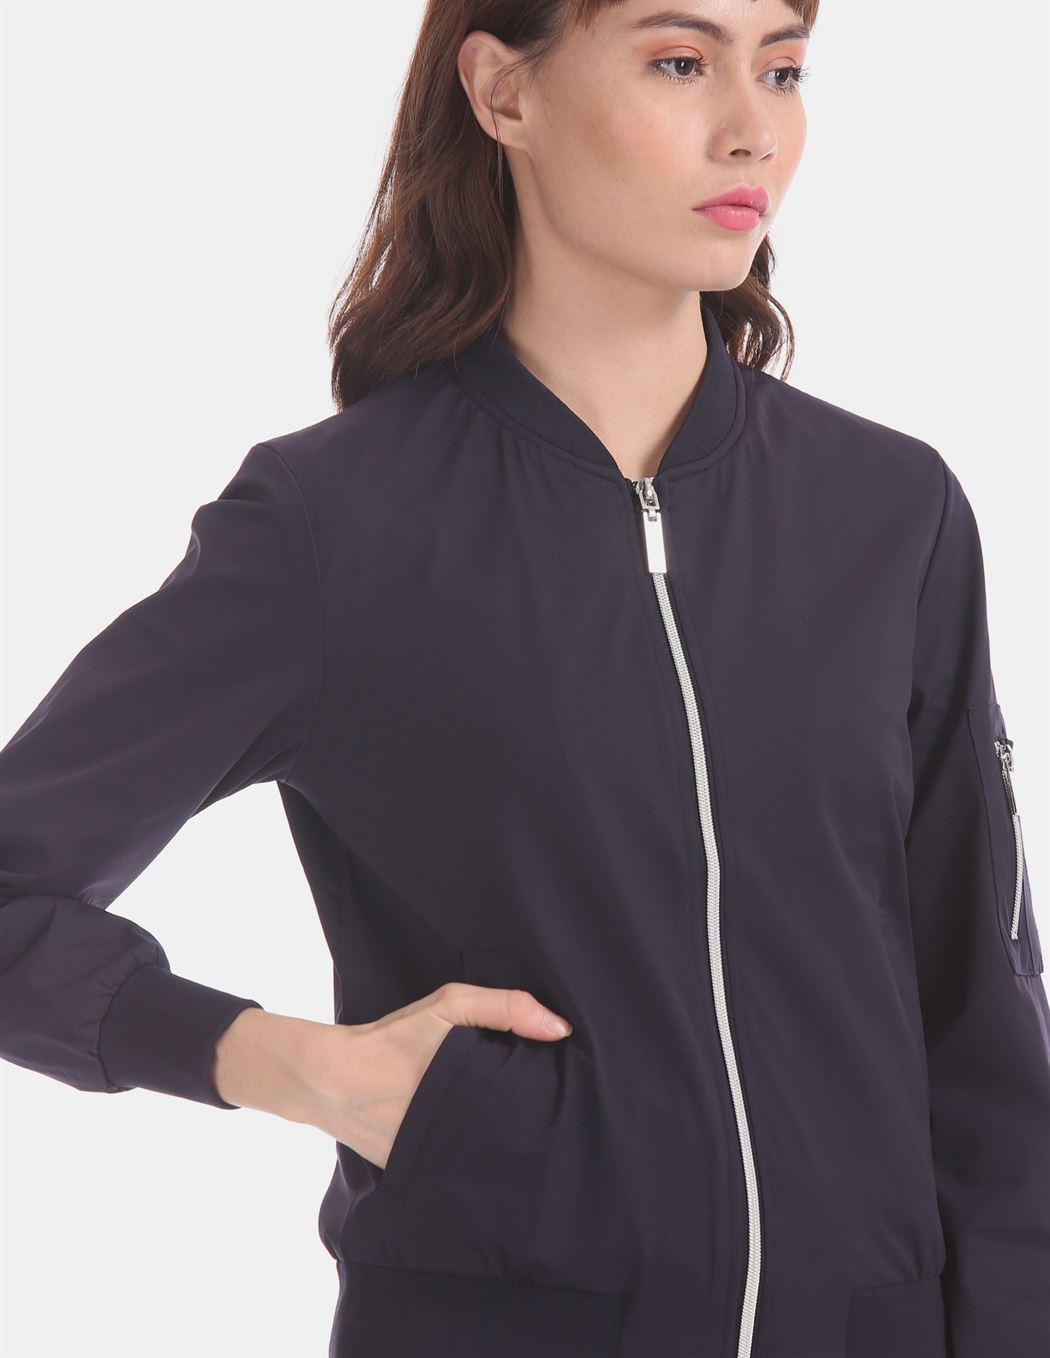 U.S. Polo Assn. Blue Zip Up Bomber Jacket